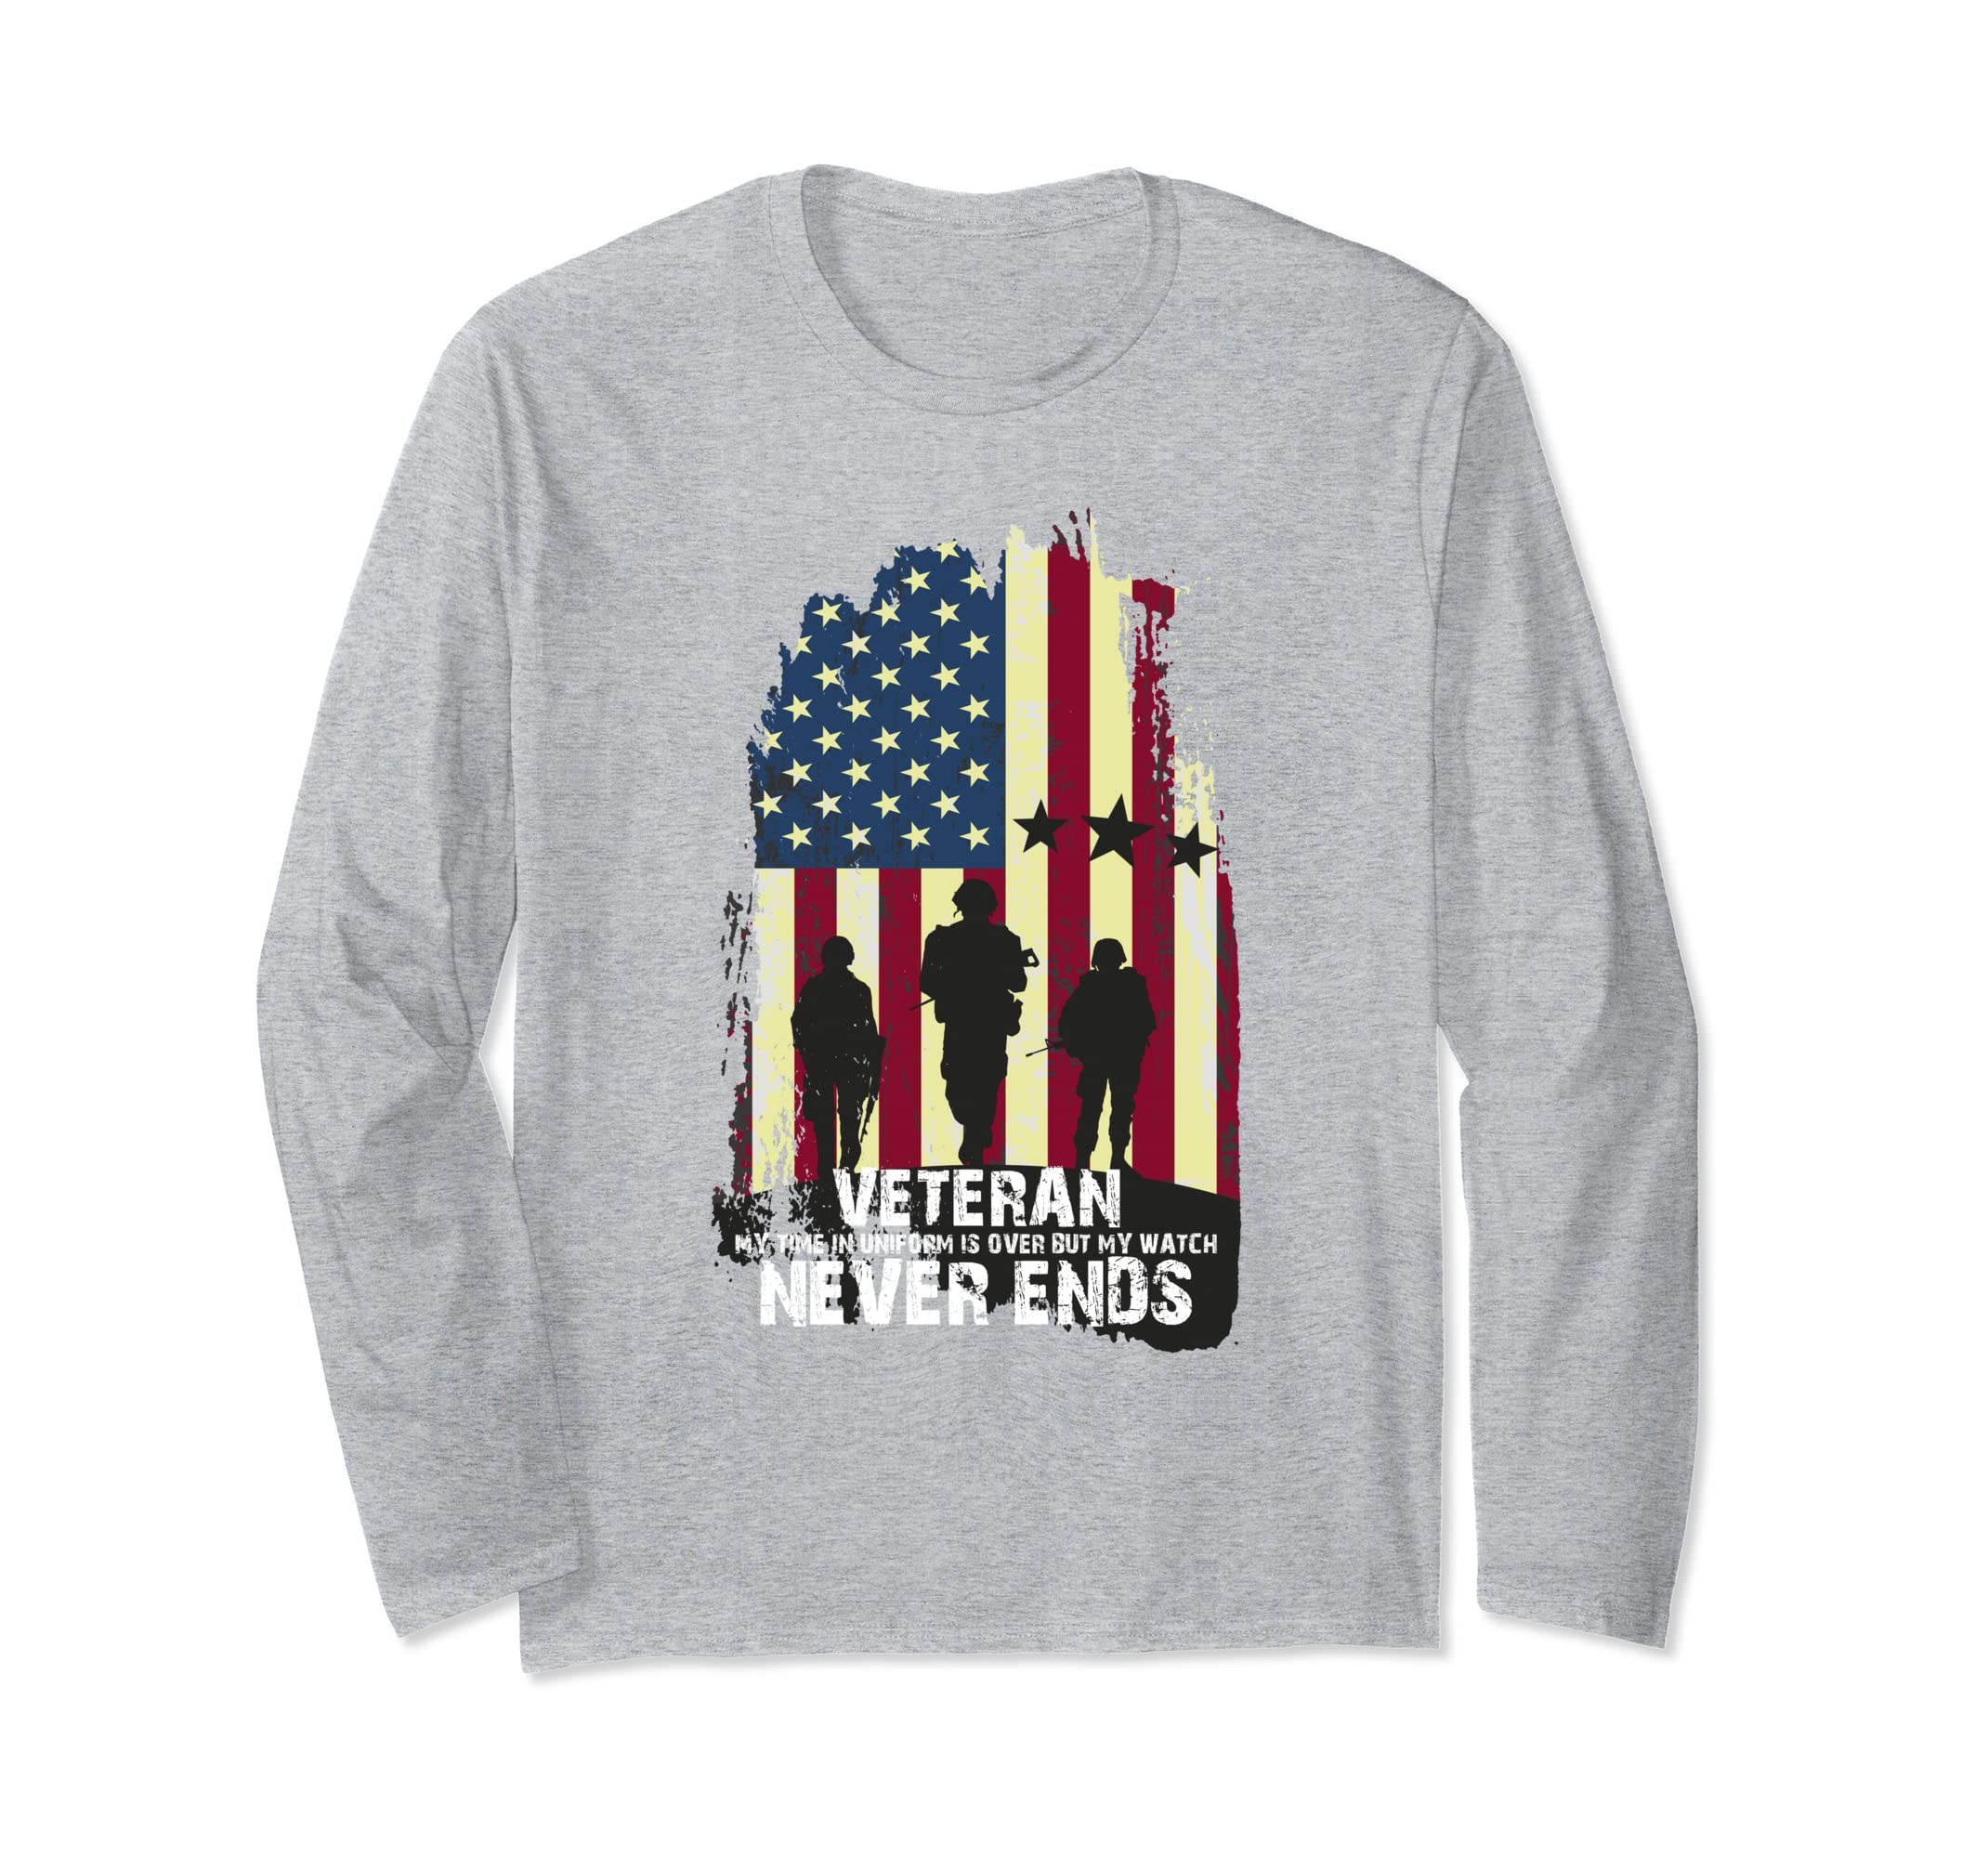 Veterans My Time in Uniform is Over Flag Long Sleeve Tee-azvn